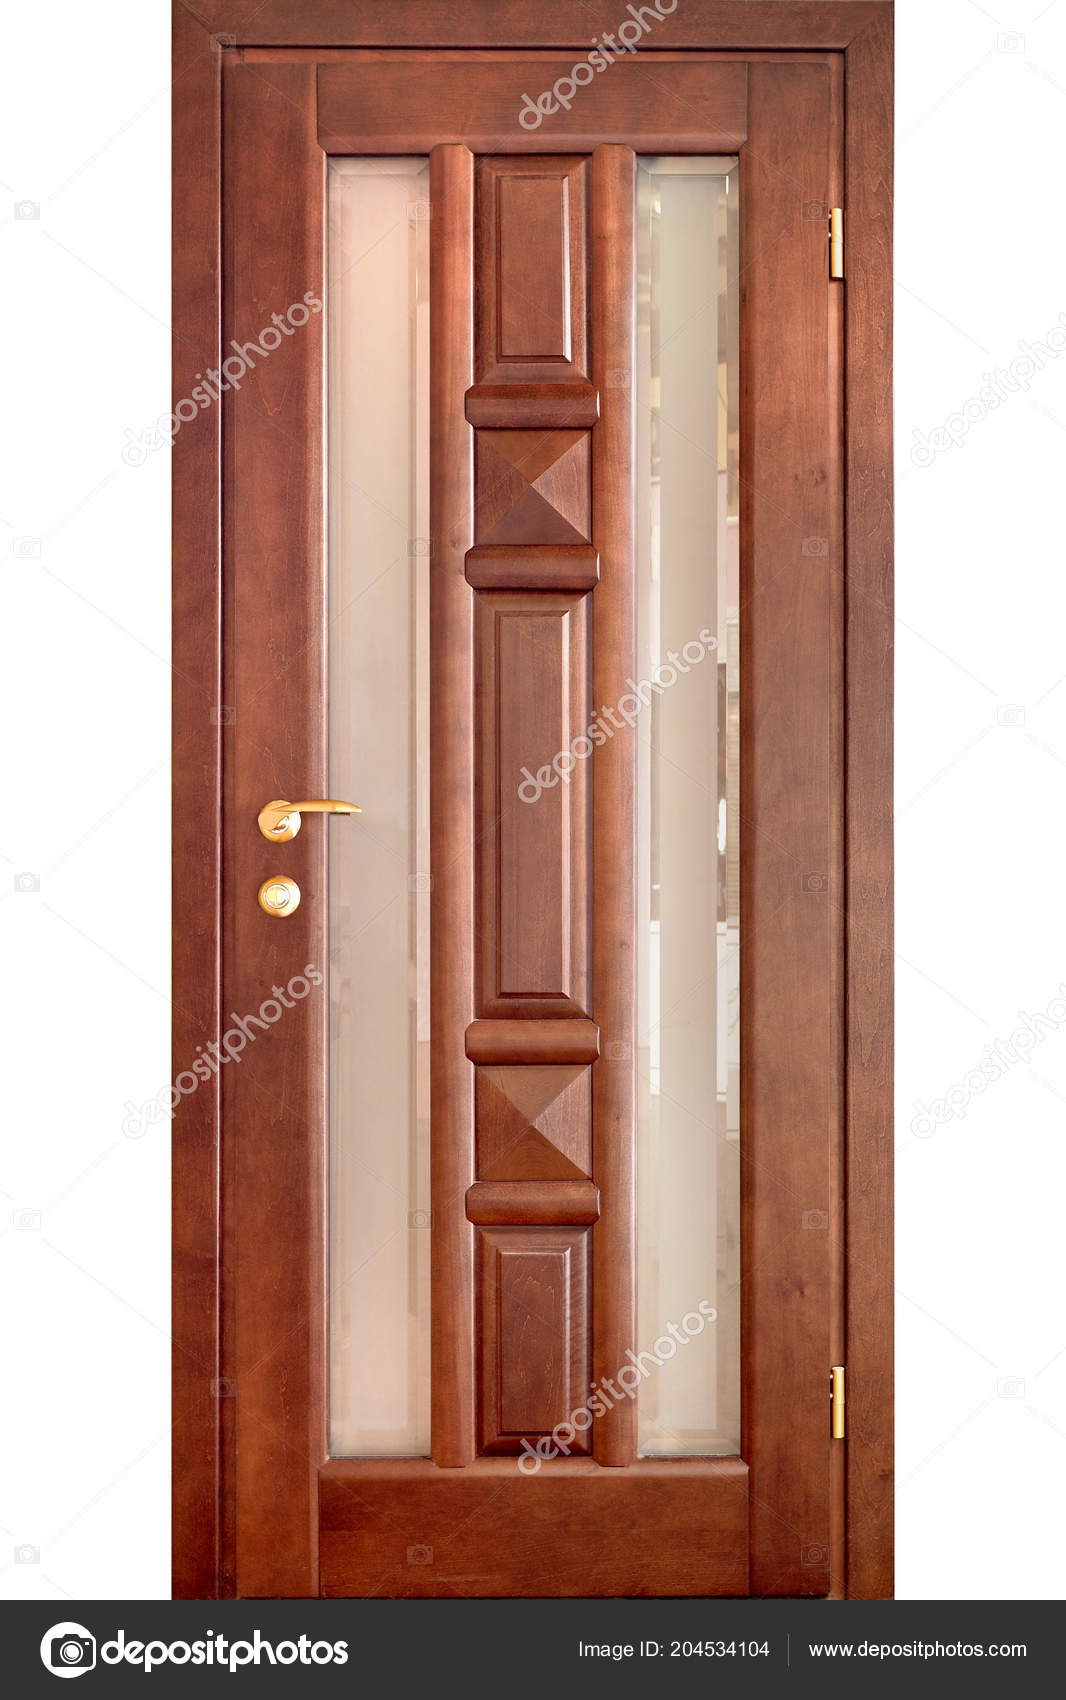 Wooden Interior Door Cherry Wood Brass Handle Insets Frosted Glass U2014 Stock  Photo